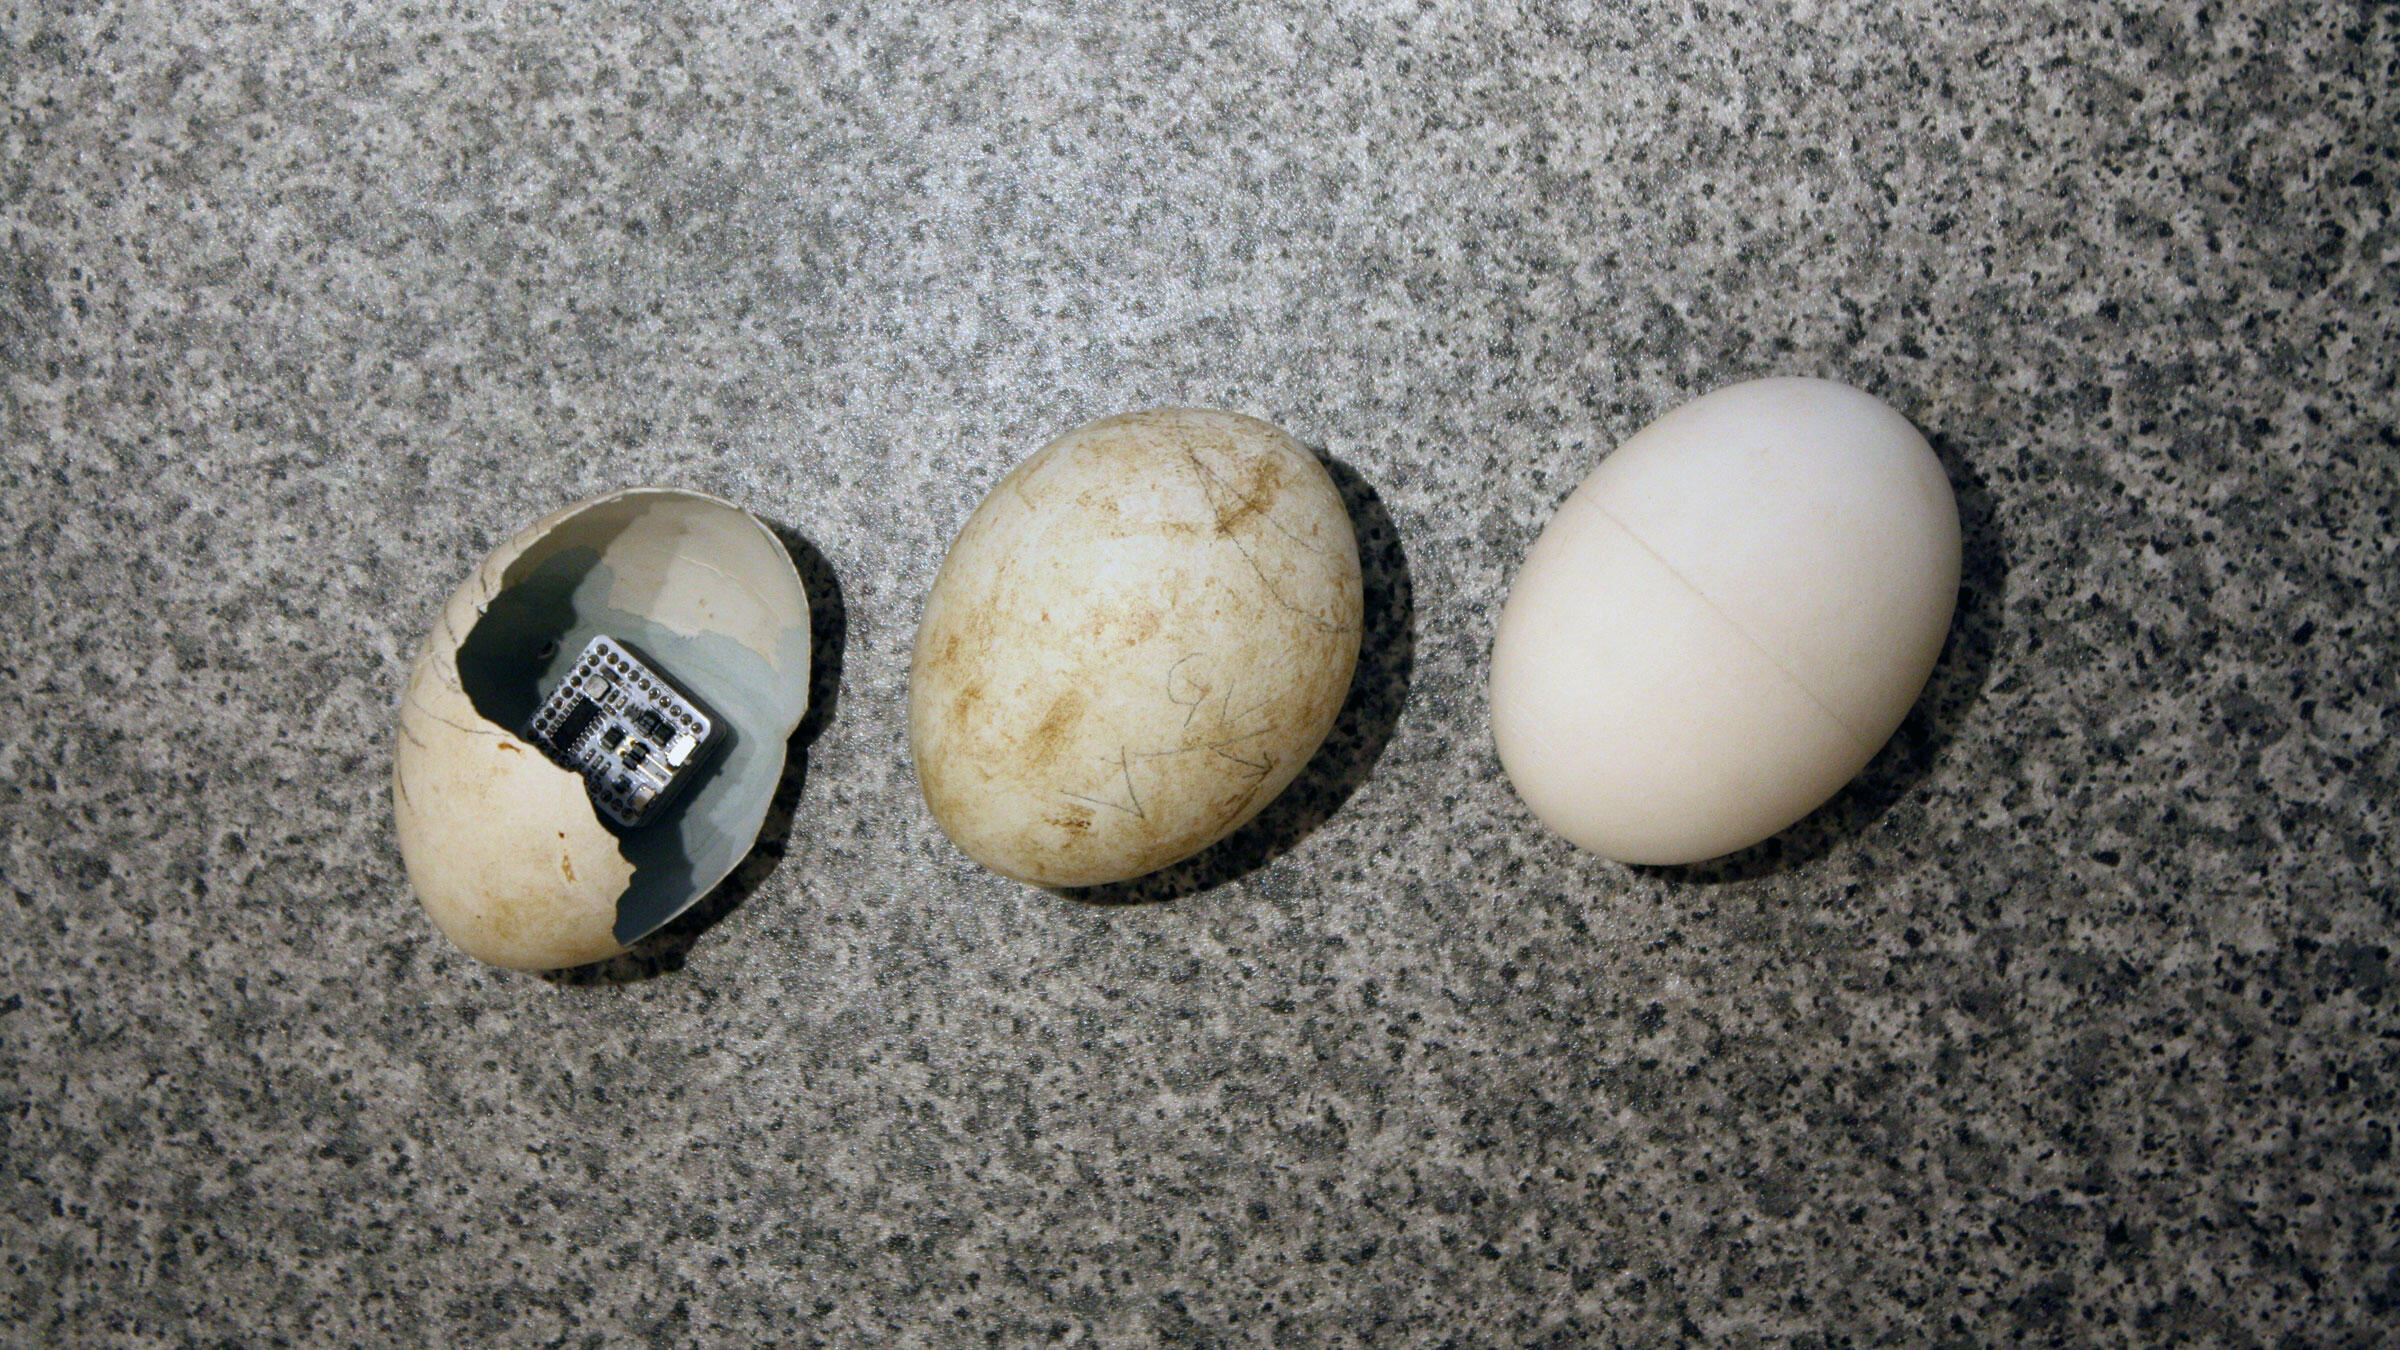 From left to right: A Griffon Vulture egg with an Arduino chip; a failed egg; an EggDuino prototype. Adam Bloch